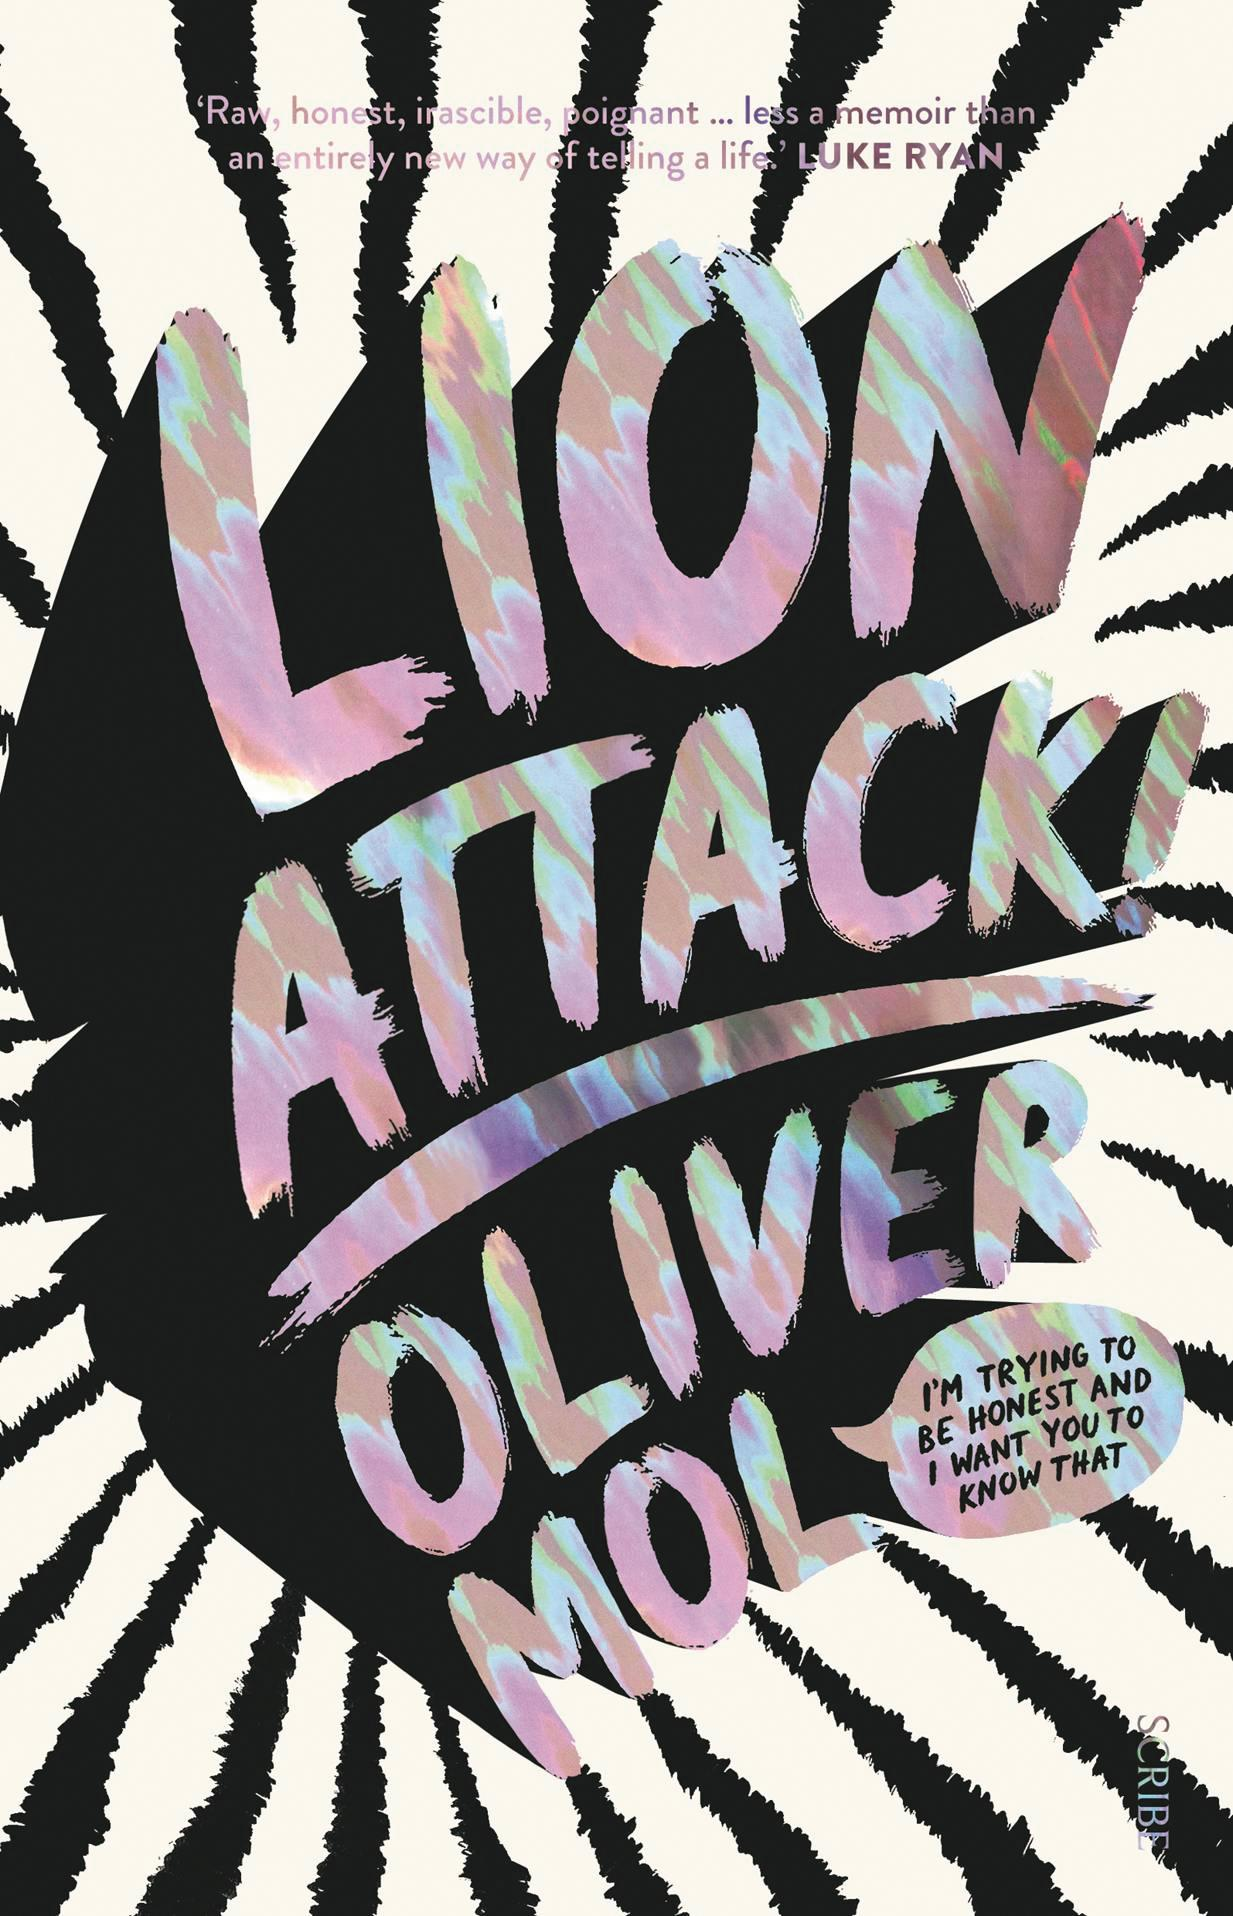 Lion Attack!: I'm trying to be honest and I want you toknowthat